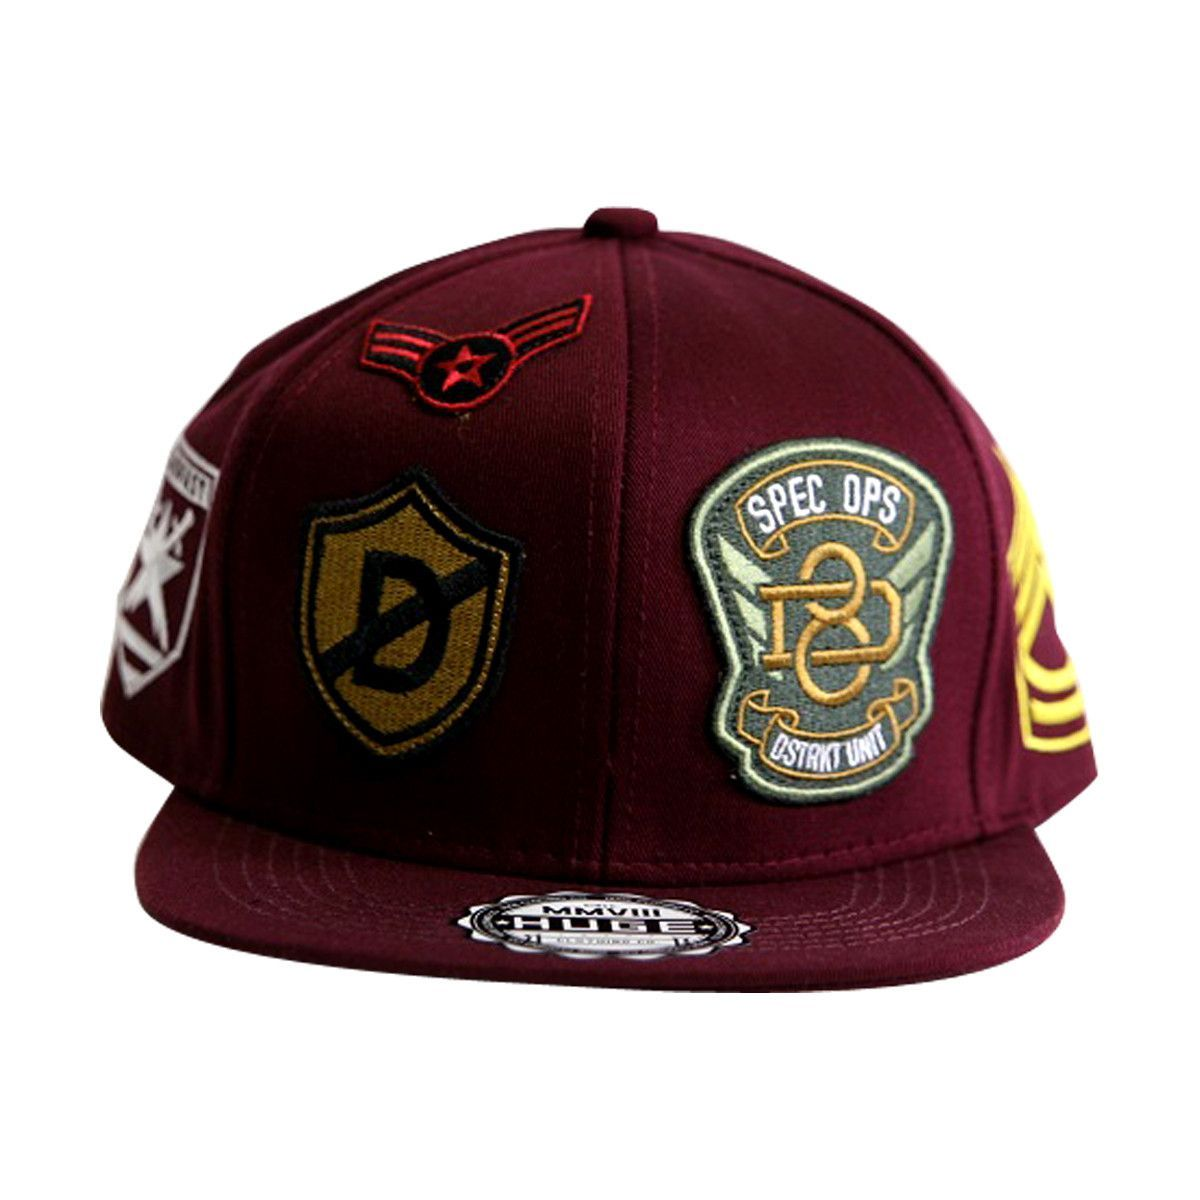 Huge New York - Army Patches Snapback Caps - Burgundy